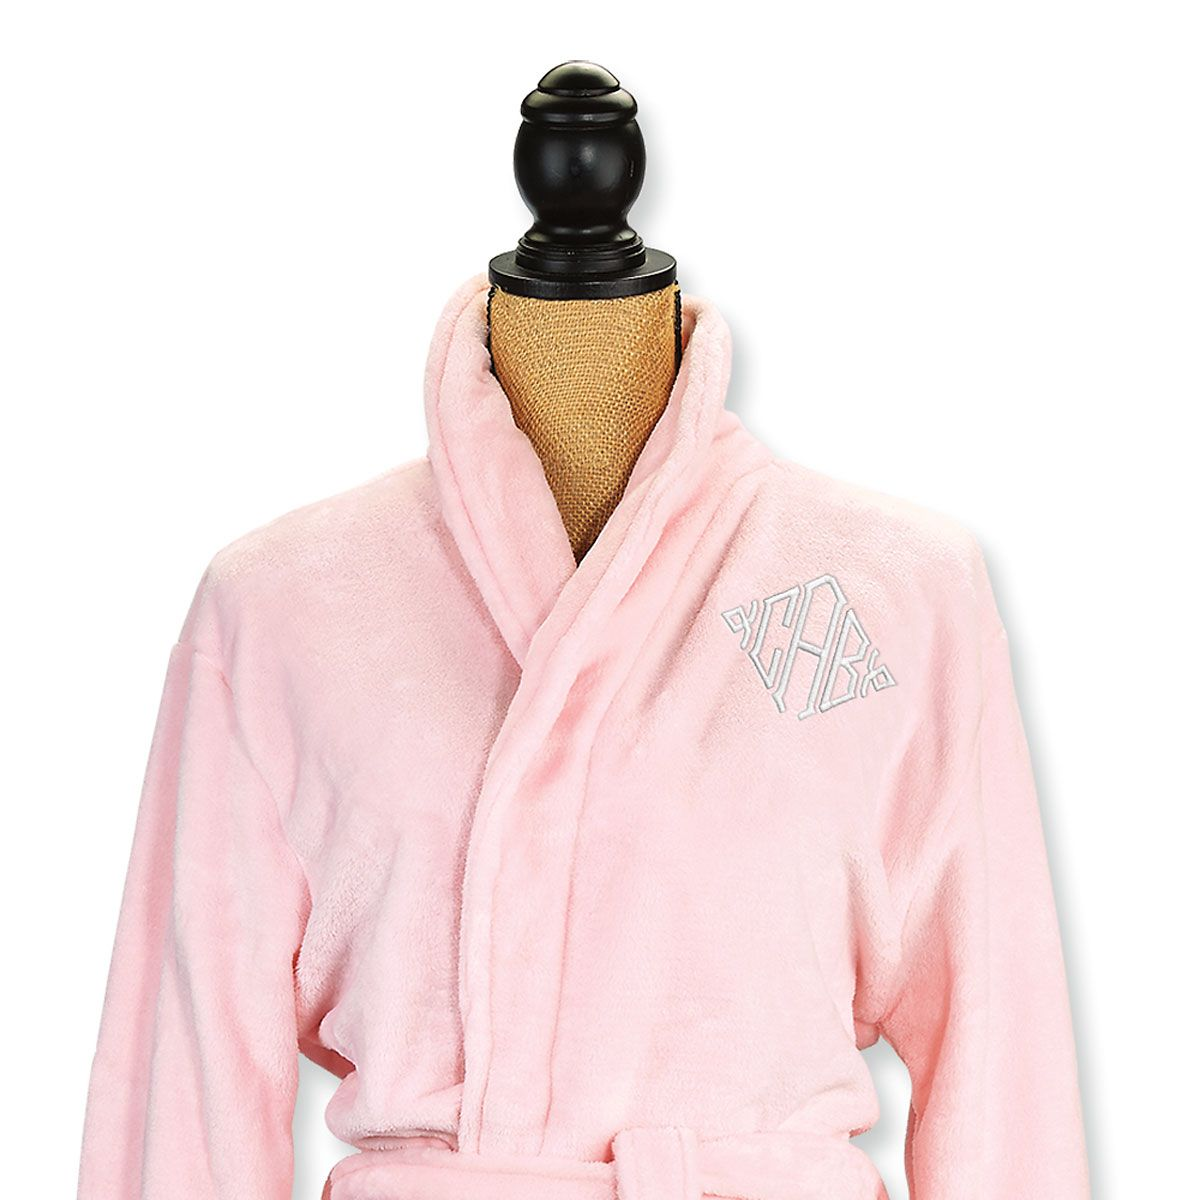 Small/Medium Pink Spa Robe - Diamond Monogram